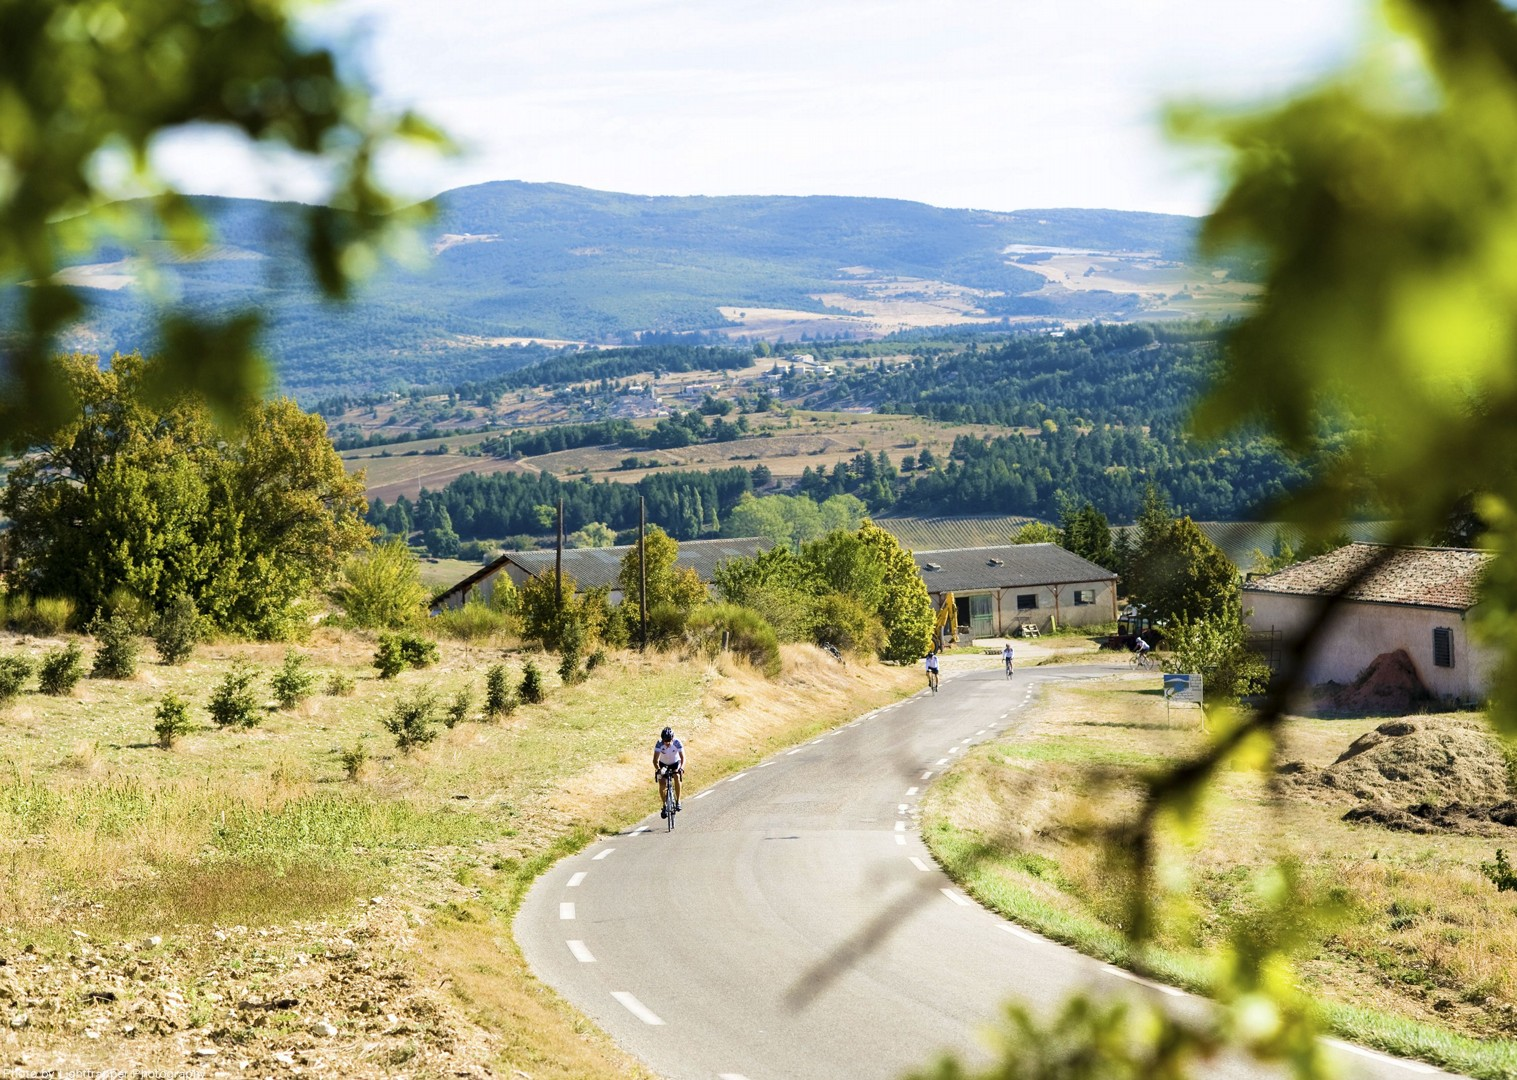 hills-of-beaujolais-france-road-holiday-bikes.jpg - France - Alsace, Burgundy and Beaujolais - Guided Road Cycling Holiday - Road Cycling